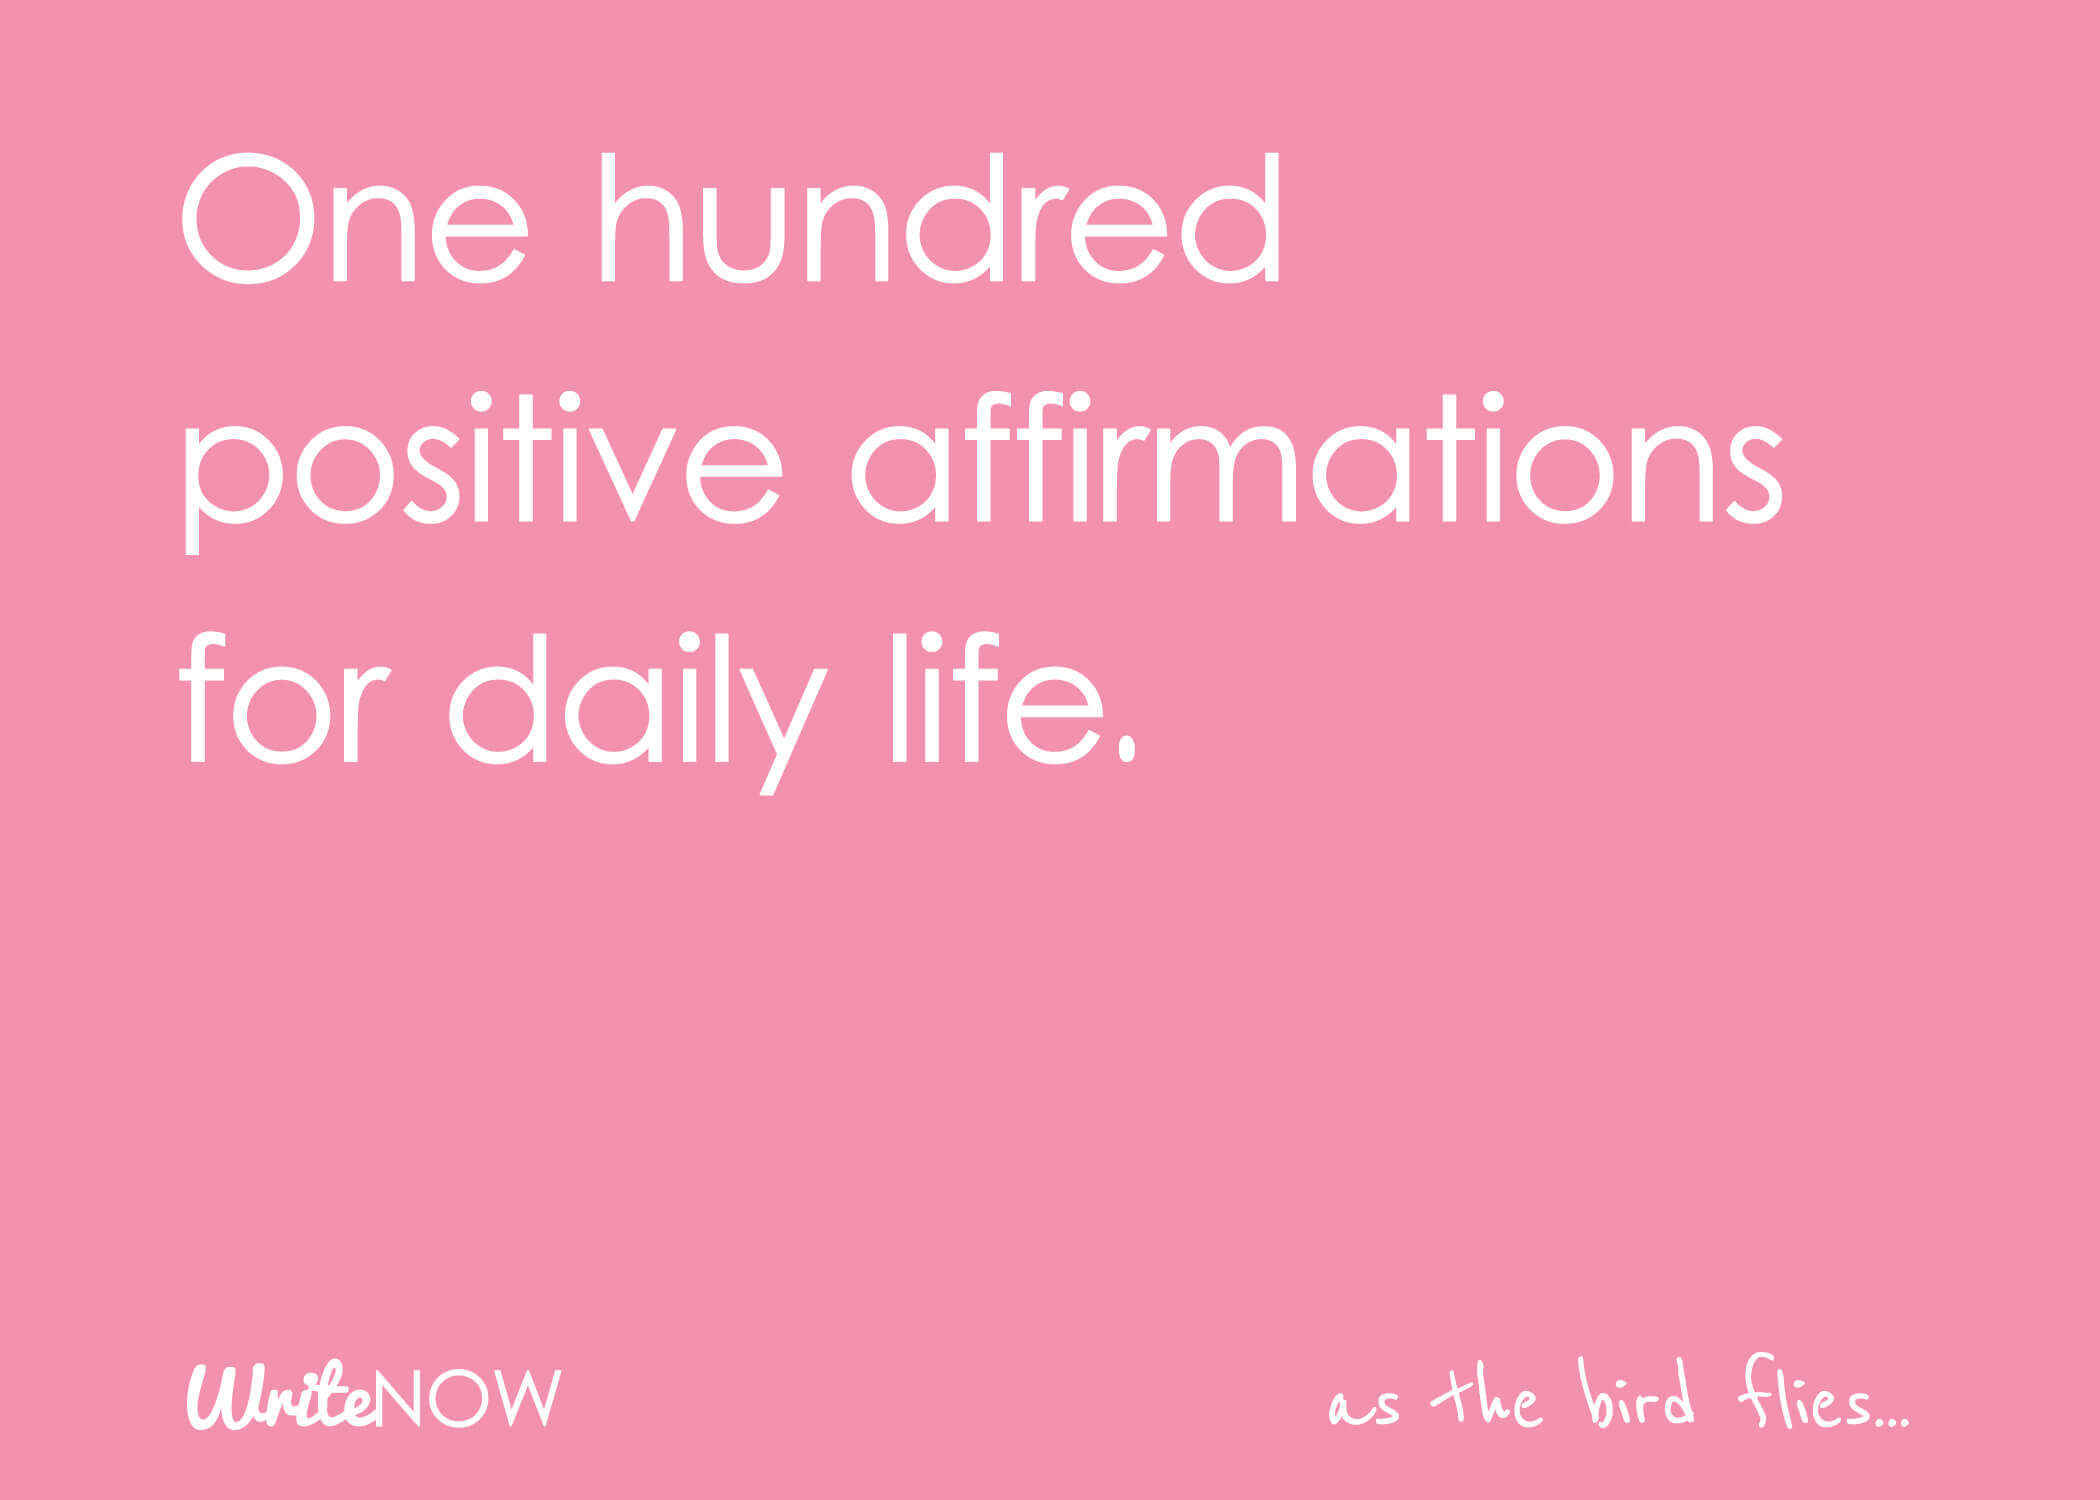 Self-Love: List of 100 Daily Positive Affirmations